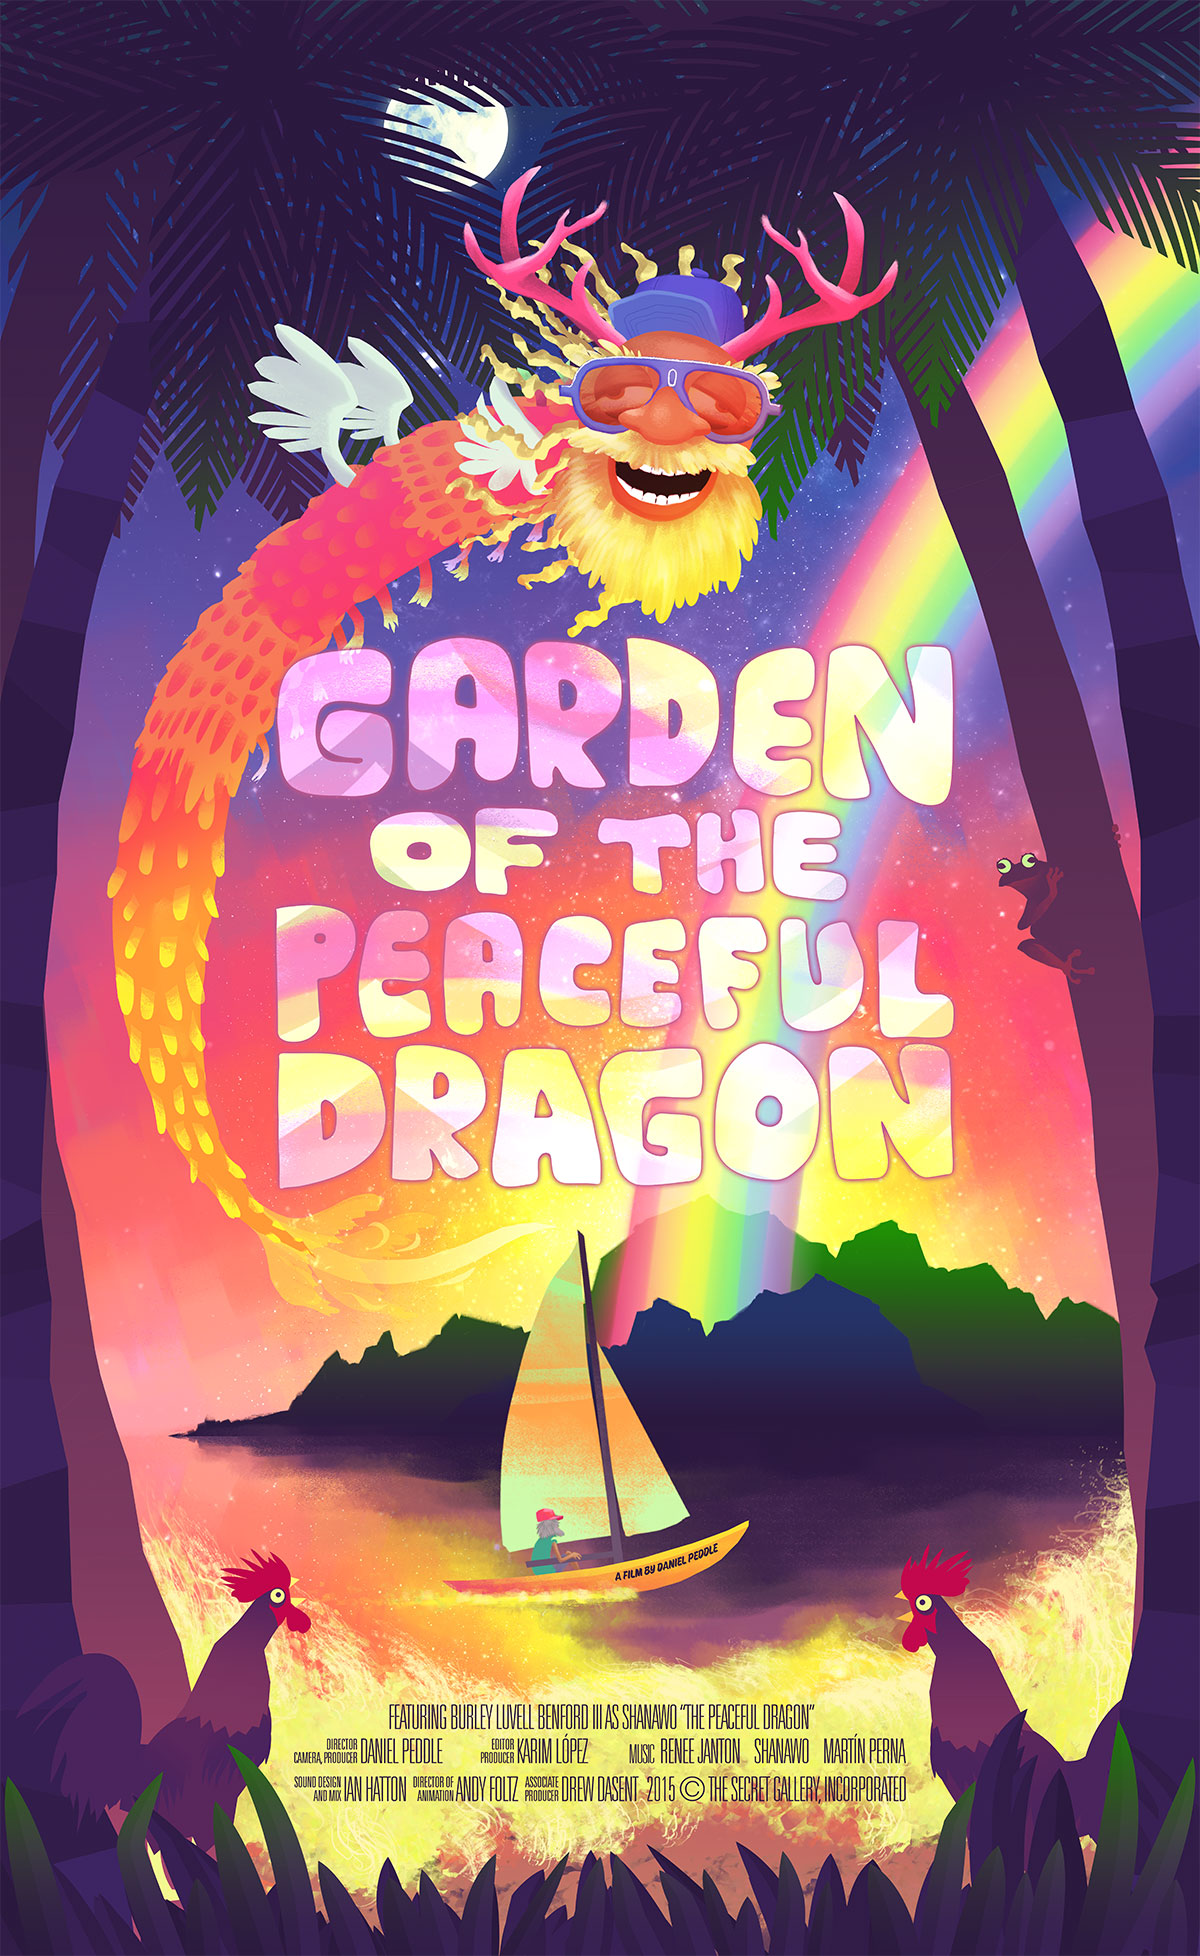 Garden of the Peaceful Dragon